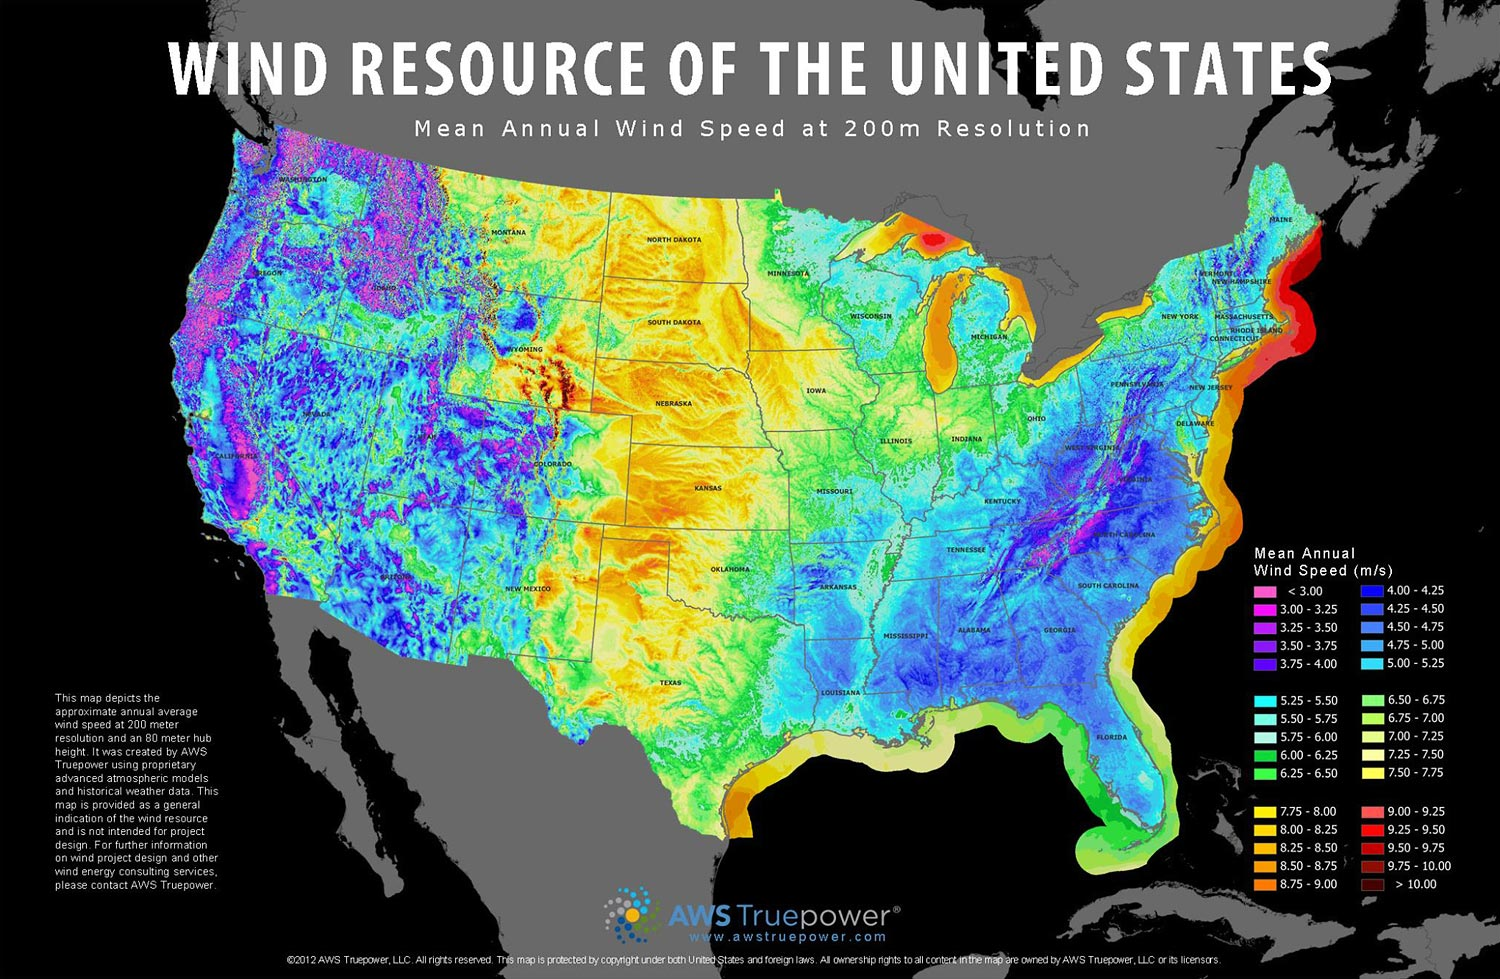 Map Of Average Wind Speeds In The Us Agriculture Stock Photos and Commercial Photographer by Todd